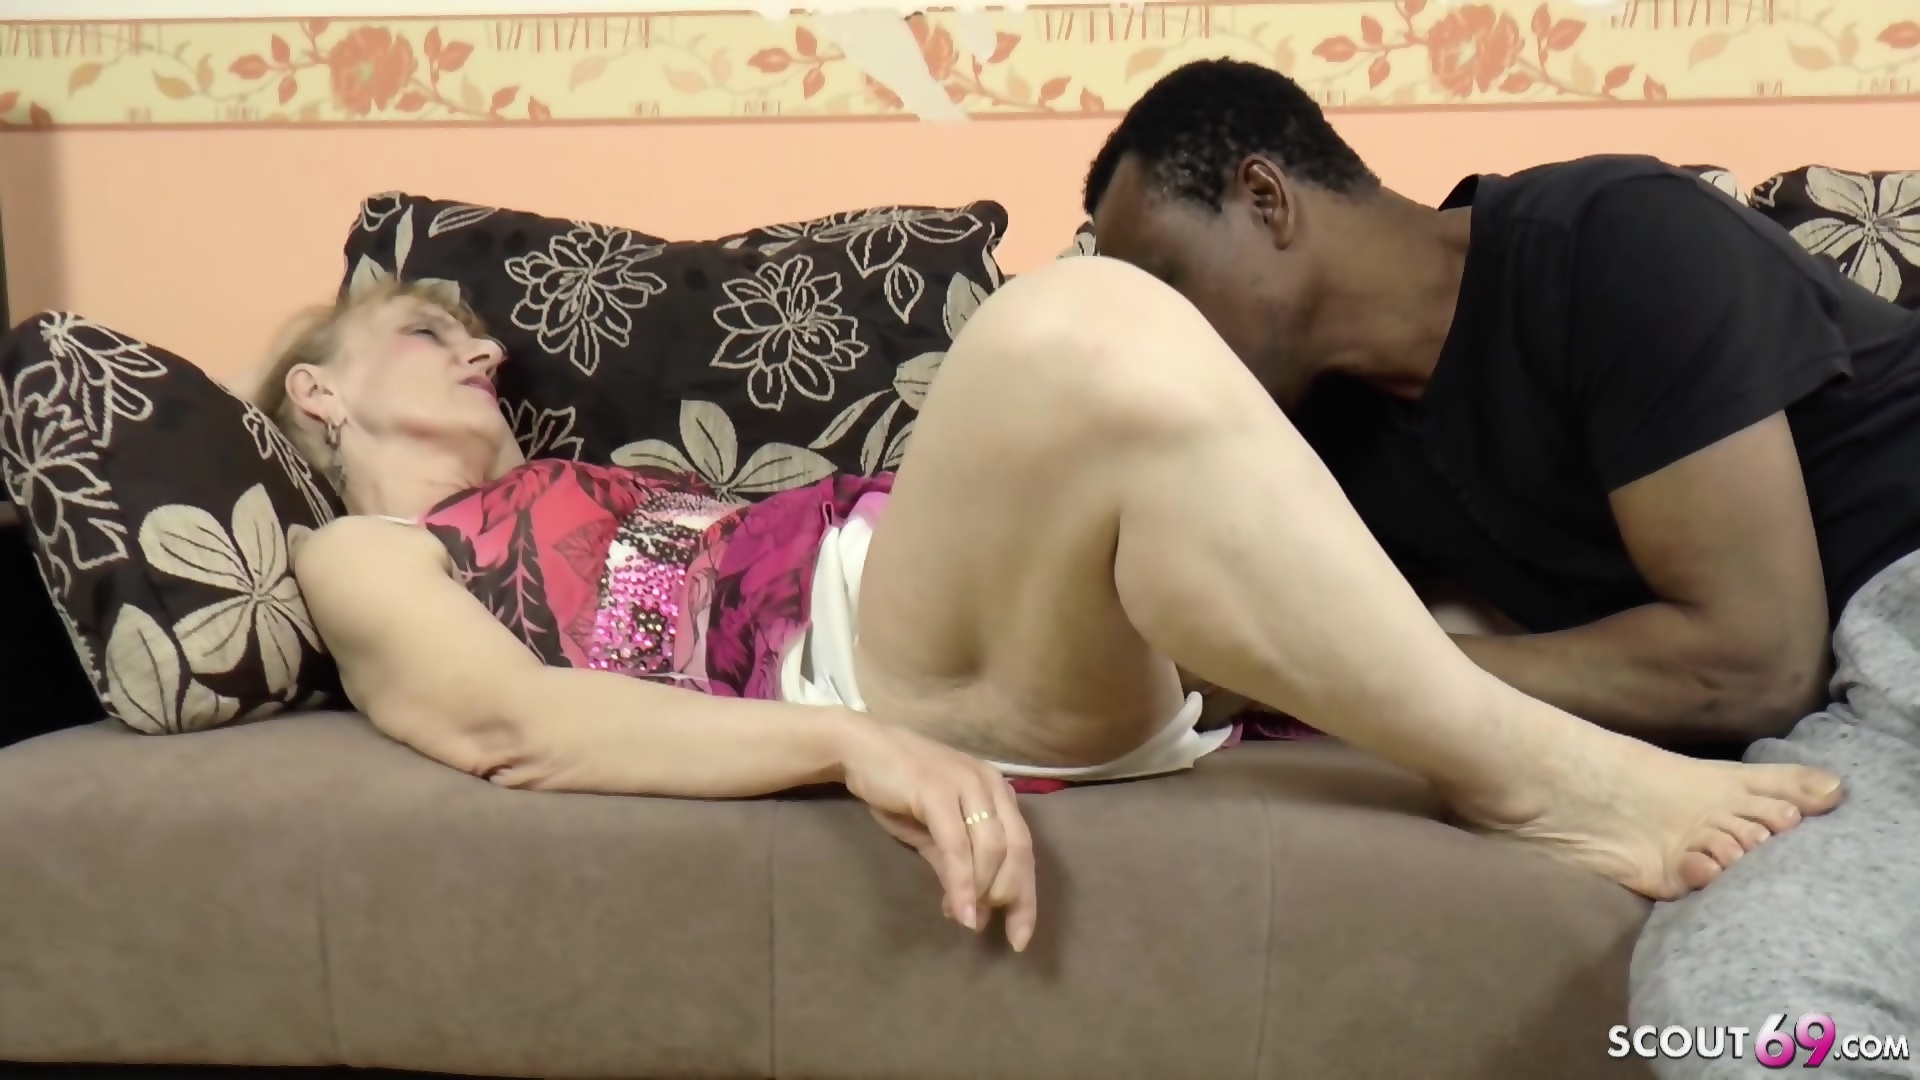 HUGE DICK BLACK REFUGEE SEDUCE GERMAN GRANNY TO FUCK - scene 4